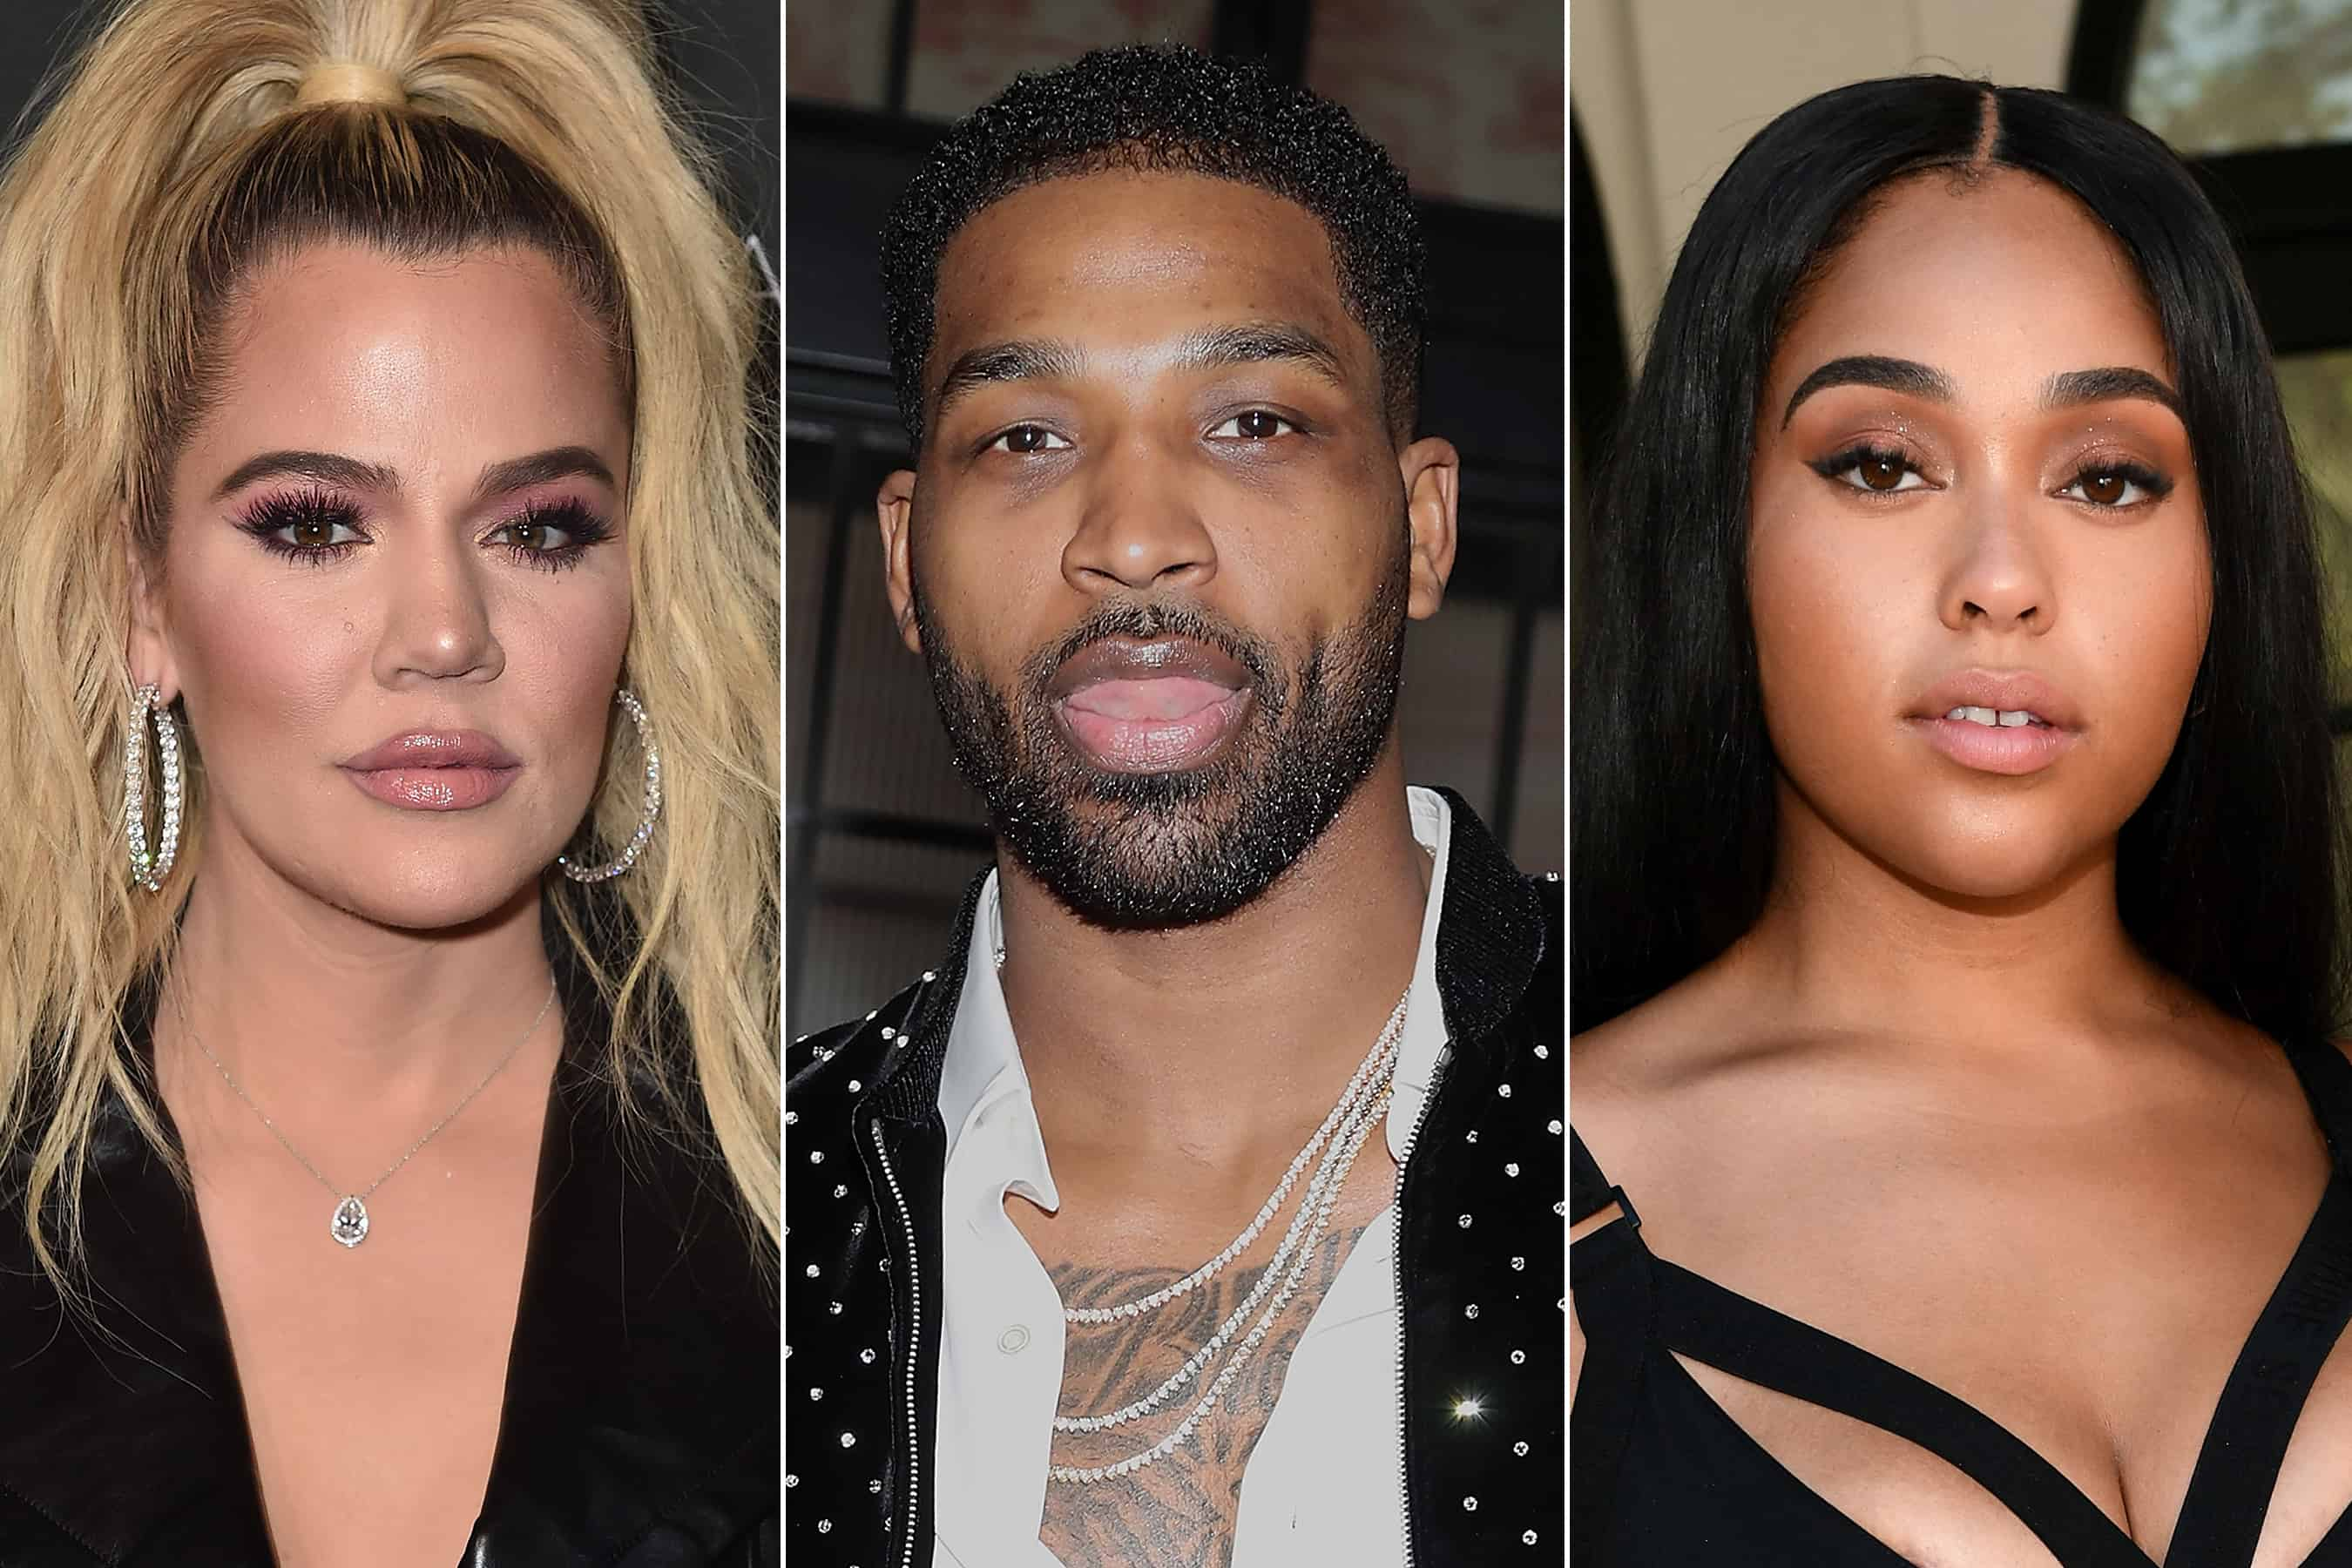 Image of Jordyn Woods was alleged to have an affair with Khole's boyfriend, Tristan Thompson, in February 2019.